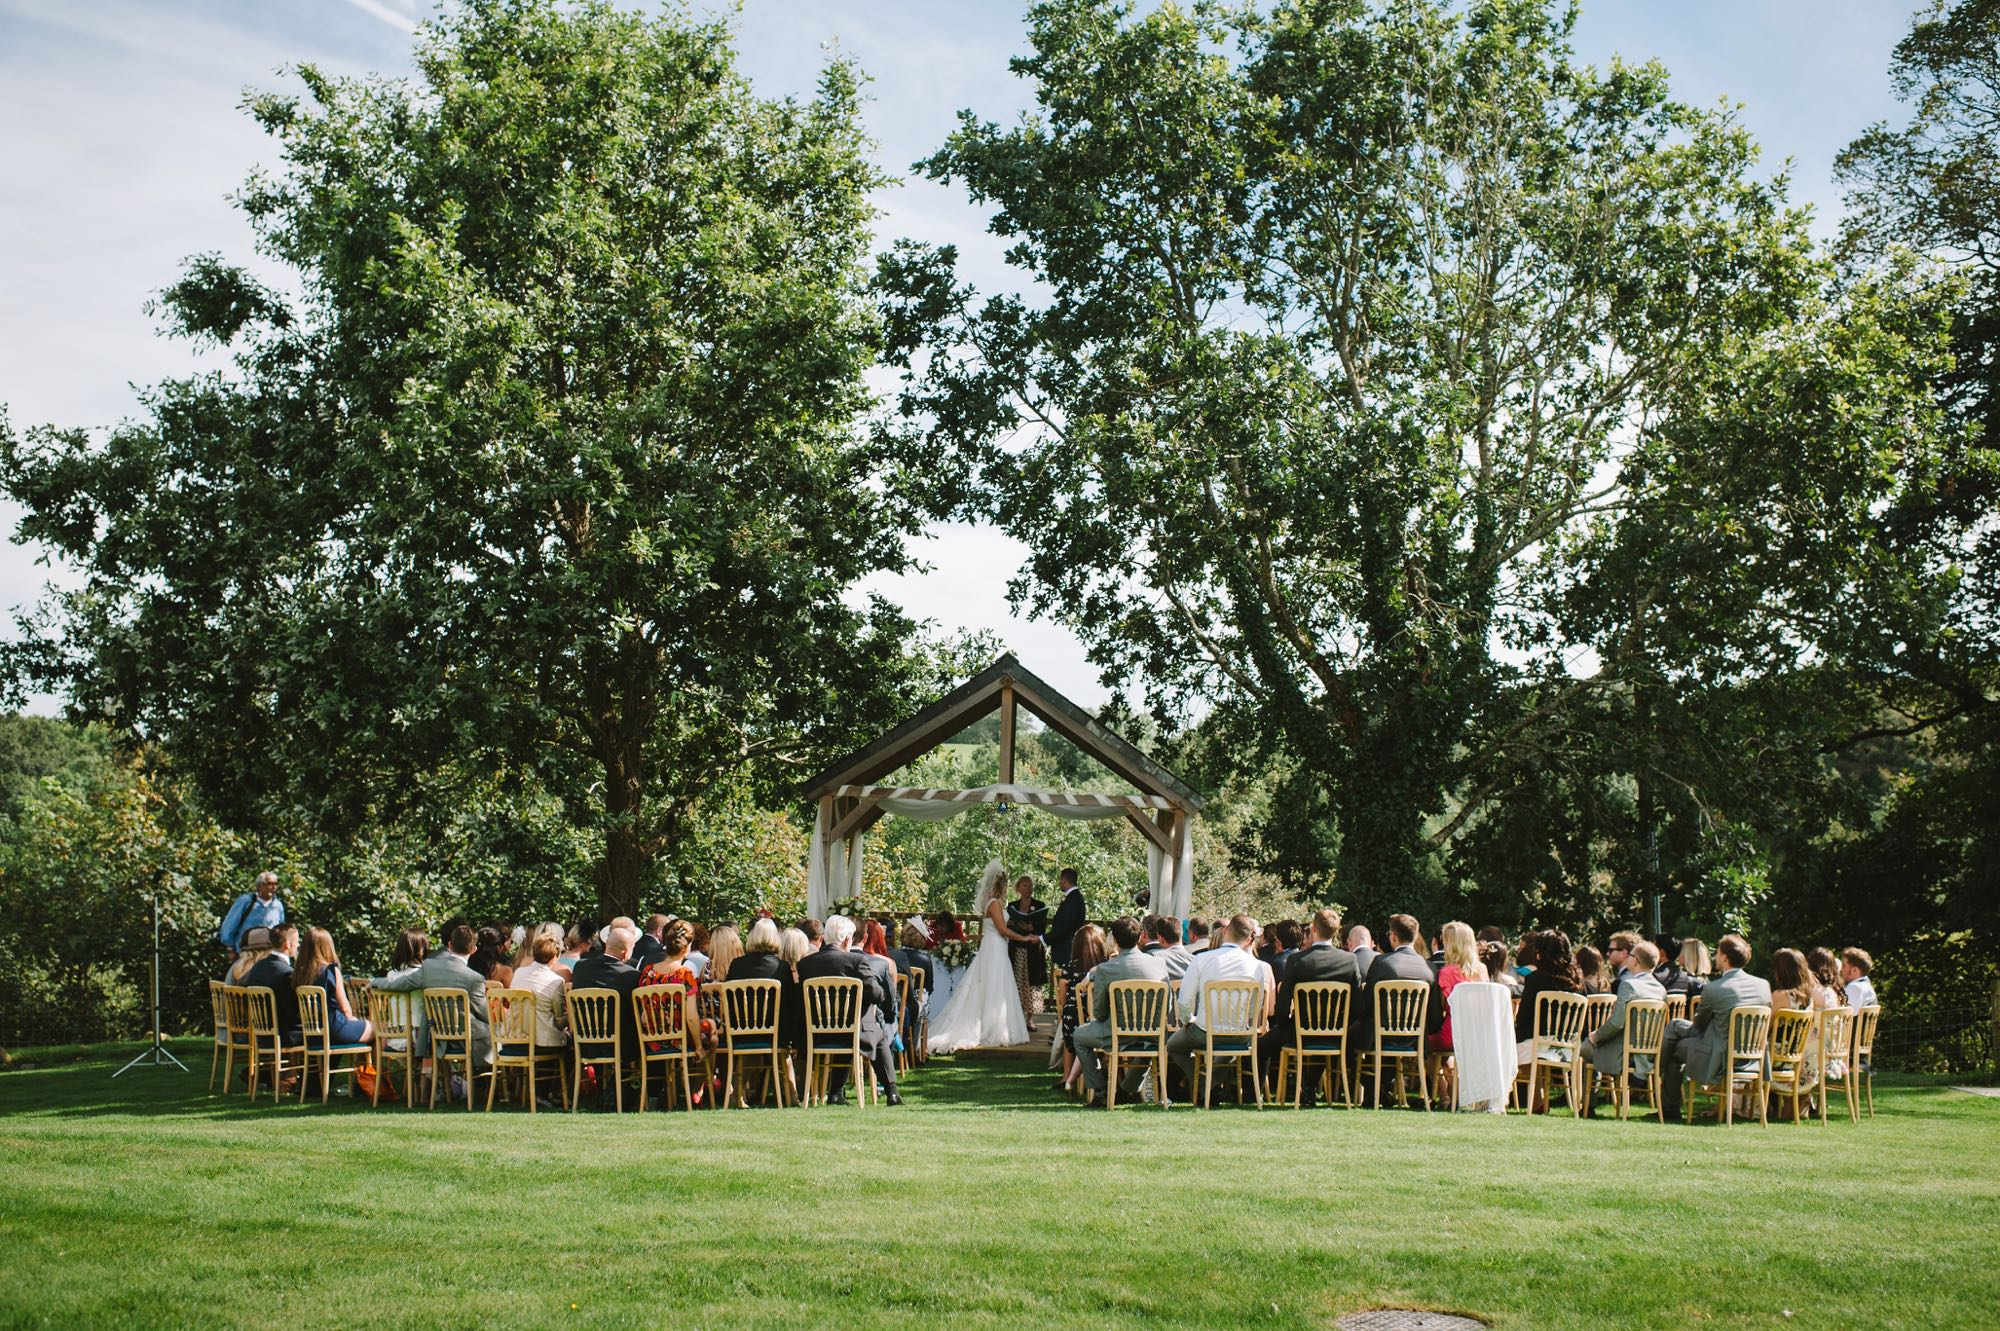 A couple exchanging vows under the Oak Arbour. The arbour is a wooden structure with four corner posts supporting a pitched roof. The arbour has a large Oak Tree on each side. The trees are in full leaf. This photo is taken from a bit of a distance and the whole of the Oak Trees are in the frame. The couple are under the arbour with the registrar and there is a clothed table (white) also under the arbour. The arbour is decorated with a some white voile. The couple are in the middle of the shot but are small compared to the canopy of the trees. They are holding hands and facing each other. The groom is on the right, the bride on the left. It is a summers day and the trees are in full leaf. The bride is wearing a white, full length, sleeveless, full-skirted dress. She has blond hair she is wearing down. The groom is wearing a dark suit. The couple are holding hands and looking at each other. You can see there guests sitting in front of the arbour in two columns of rows of seats.. The guests are looking at the couple towards the arbour and have their backs to the camera. You can see the registrar standing by a clothed table under the arbour with the couple.